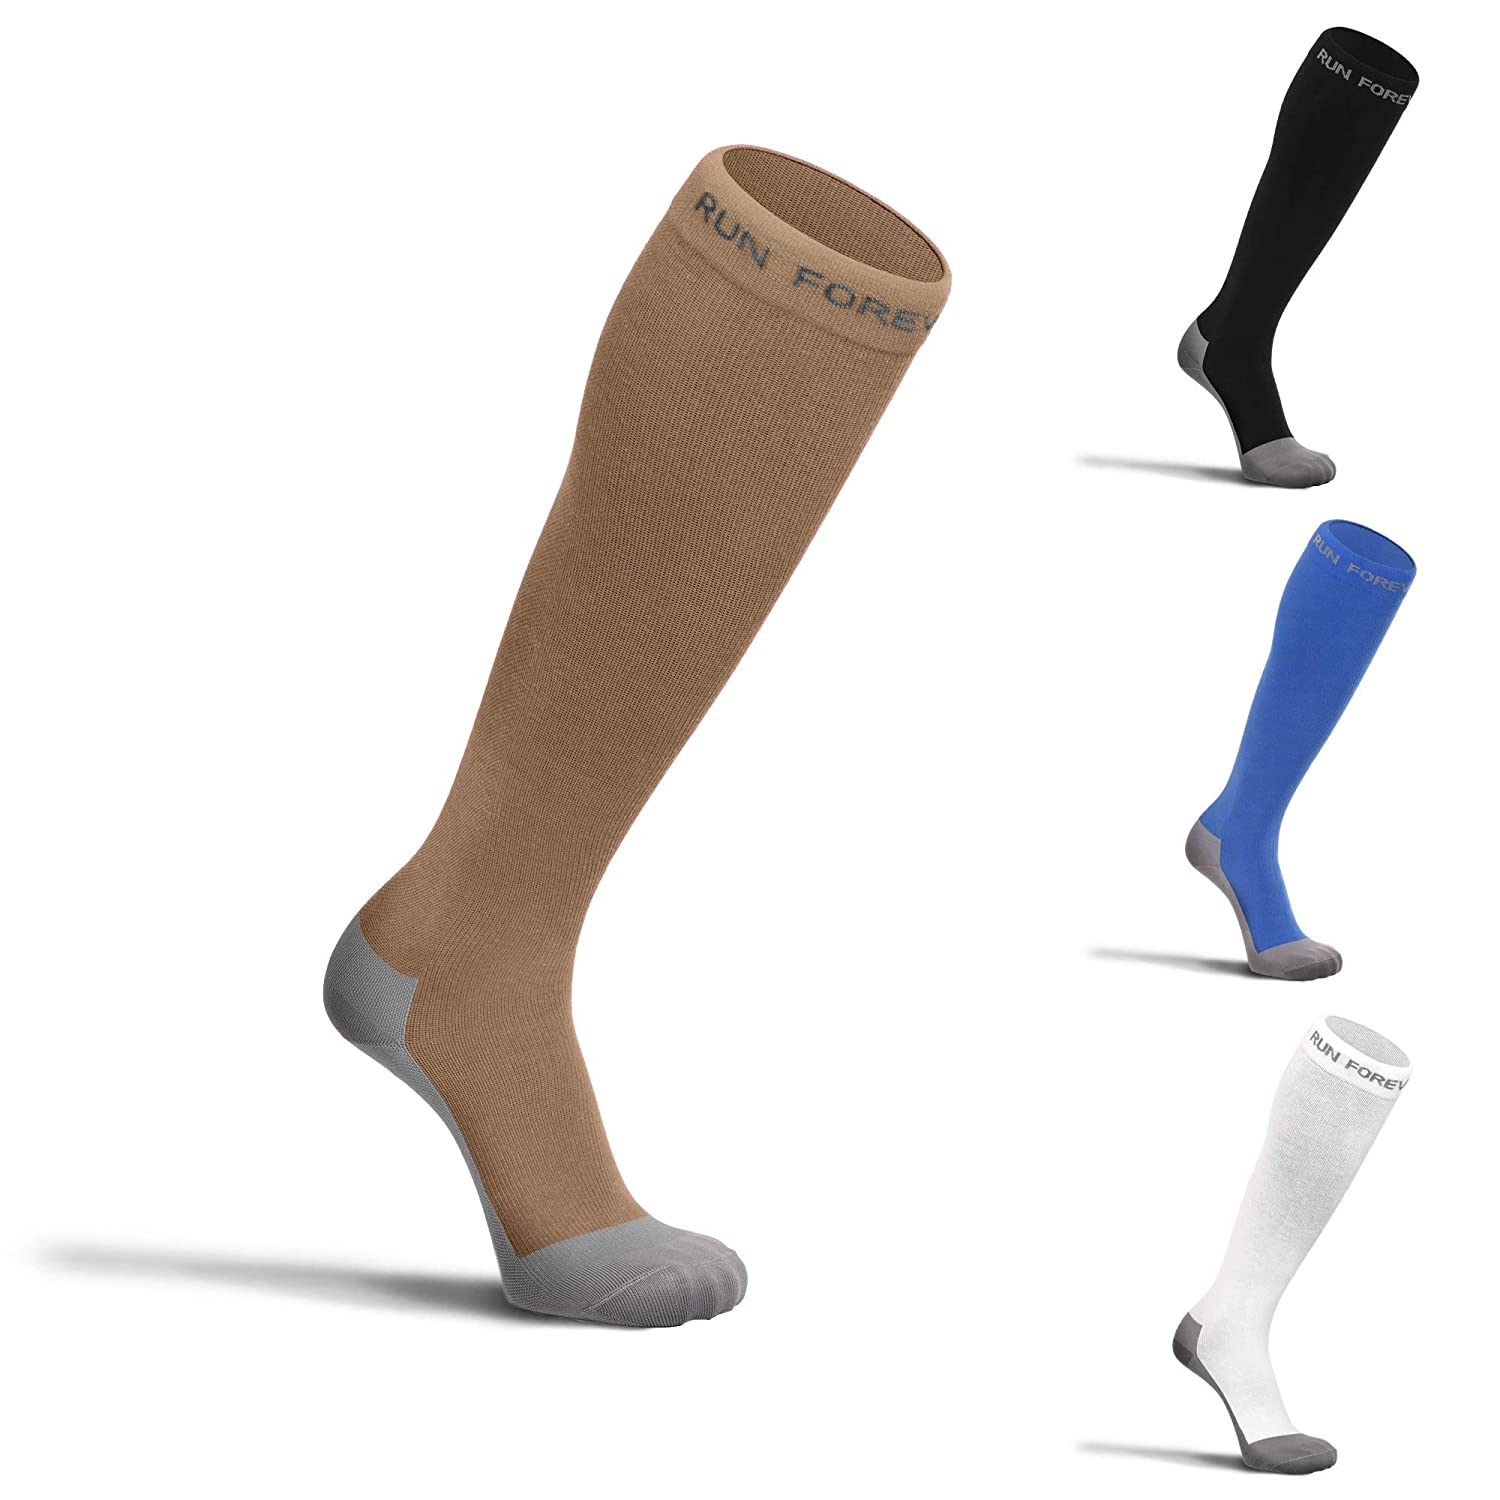 ffe588e5b Compression Socks for Men   Women – Best (20-30mmHg) Medical Grade  Graduated Recovery Stockings for Nurses